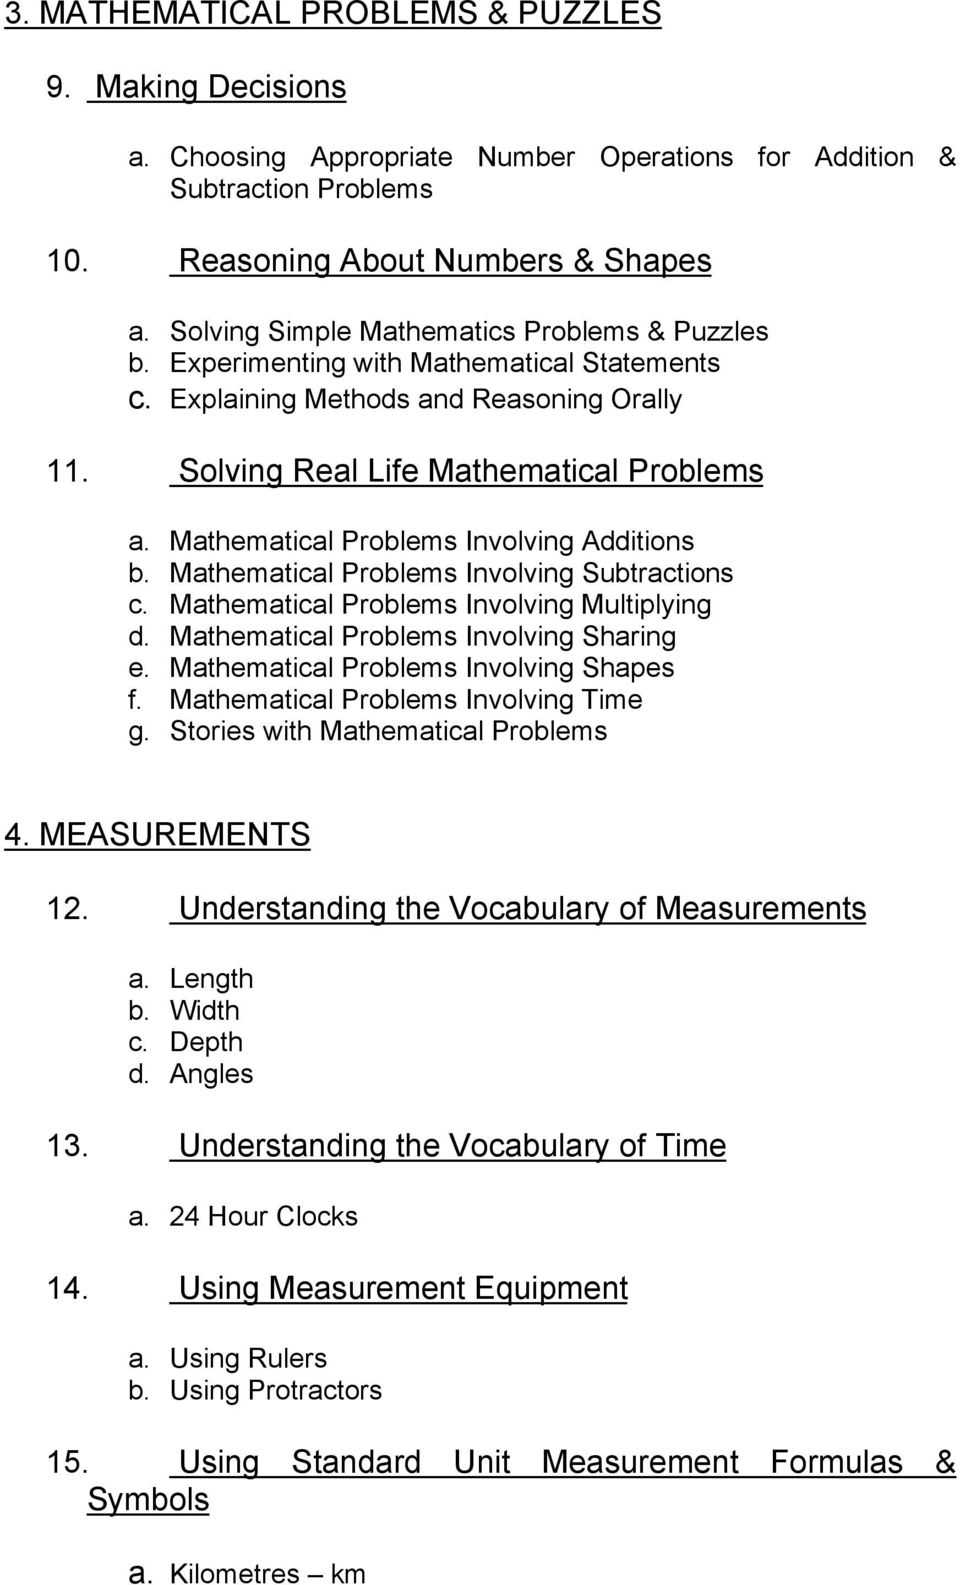 Mathematical Problems Involving Additions b. Mathematical Problems Involving Subtractions c. Mathematical Problems Involving Multiplying d. Mathematical Problems Involving Sharing e.